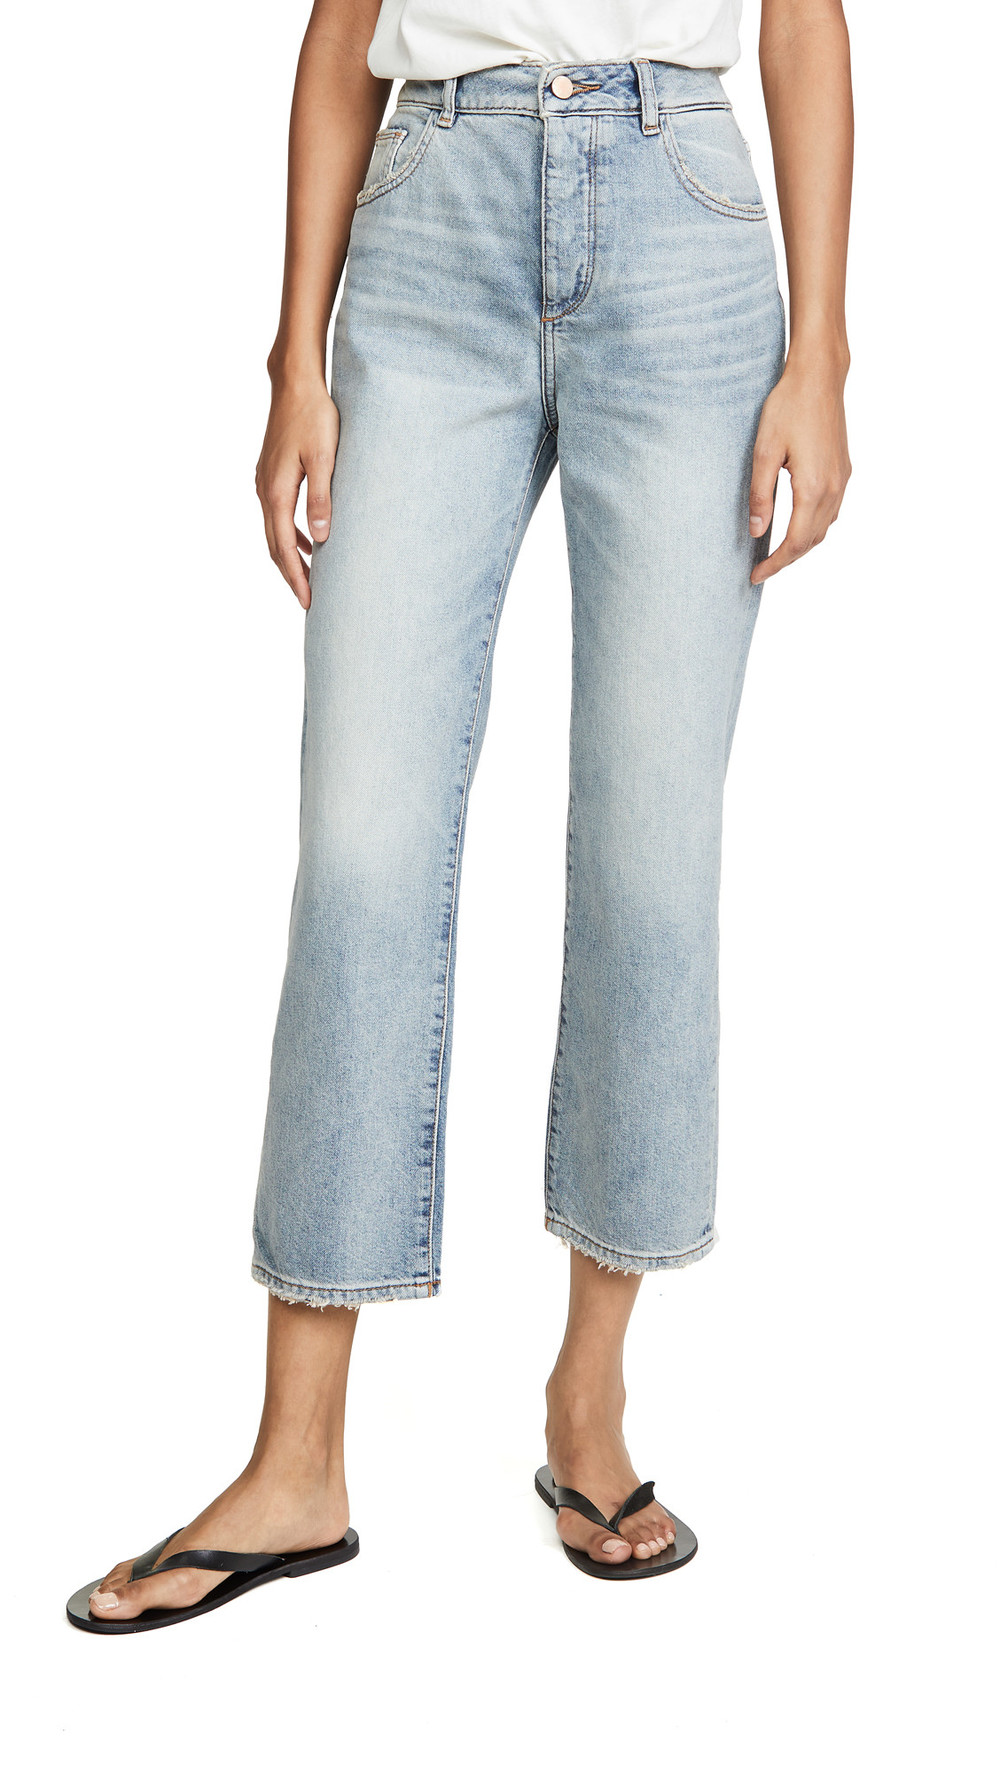 DL DL1961 Jerry High Rise Straight Jeans